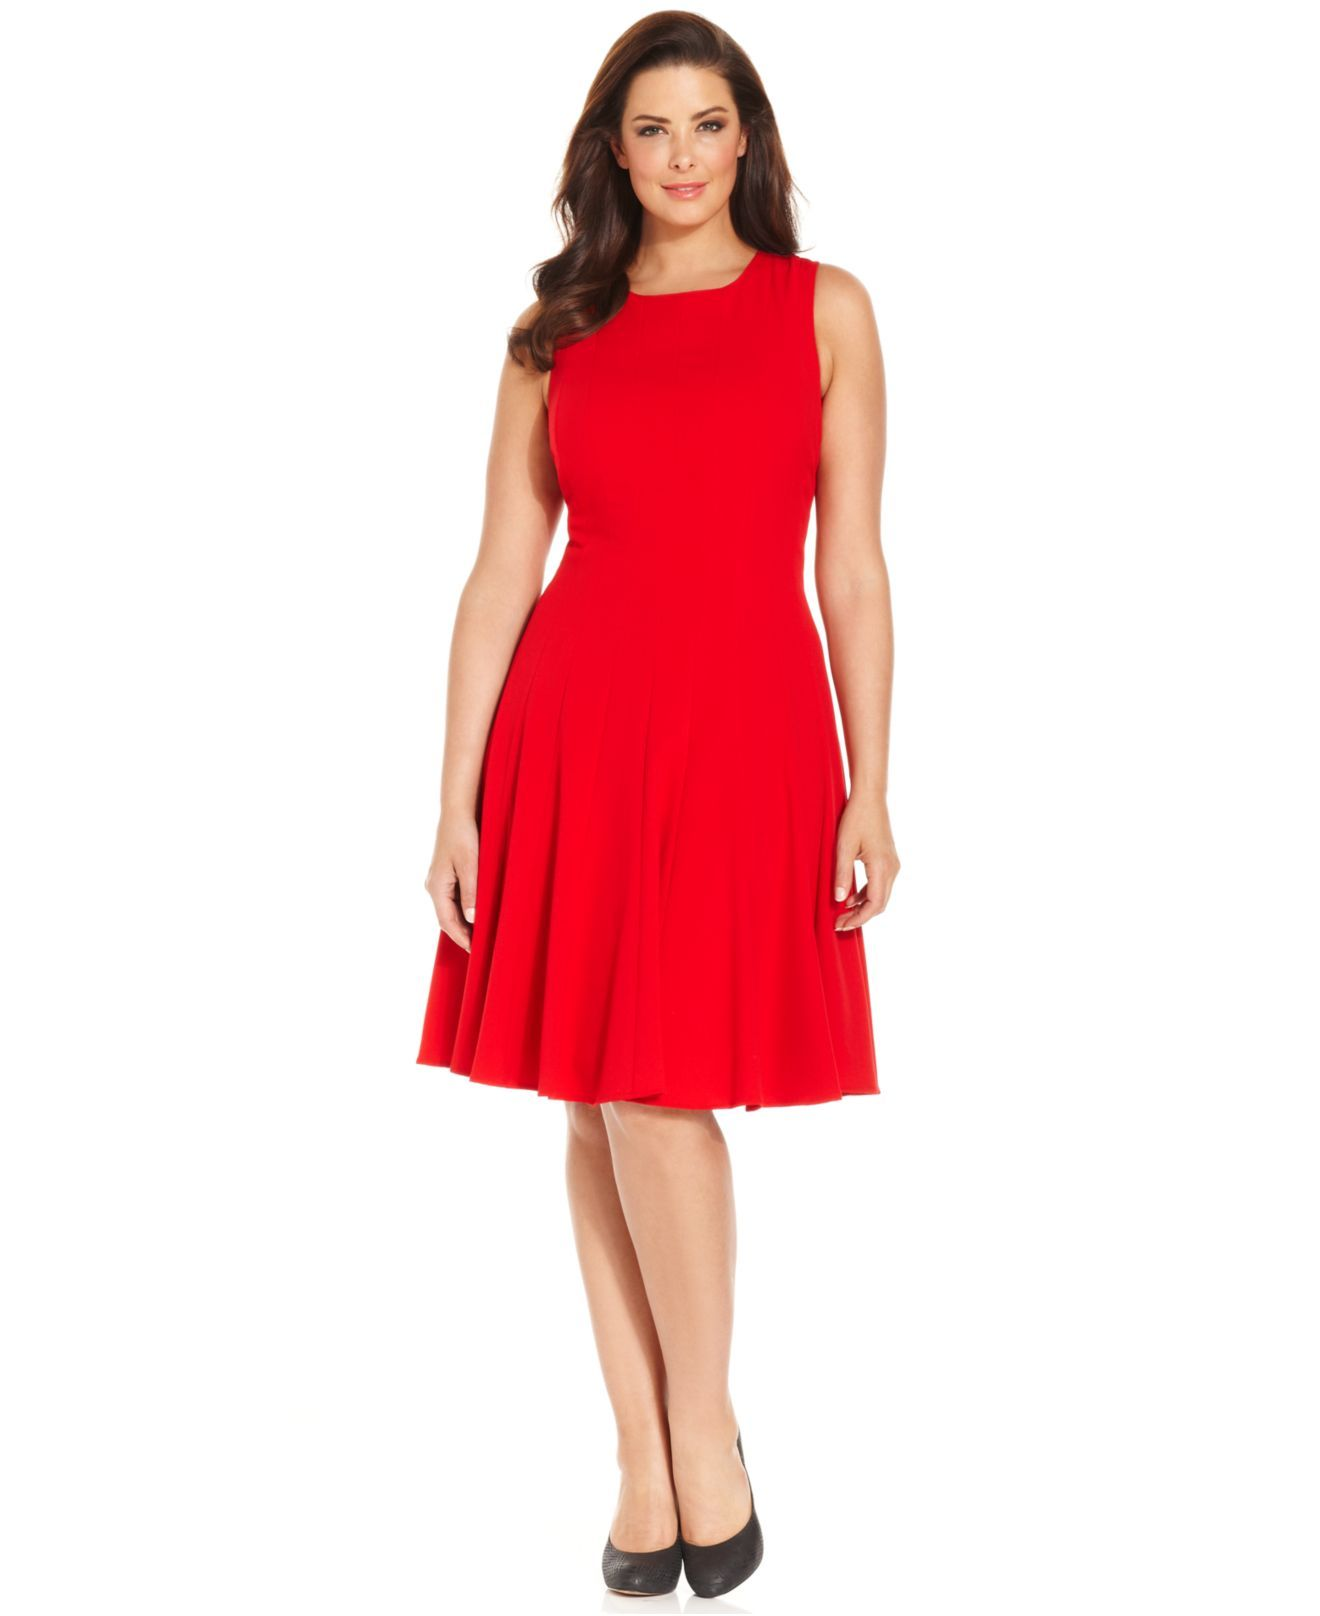 red a line dress plus size | Color dress | Pinterest